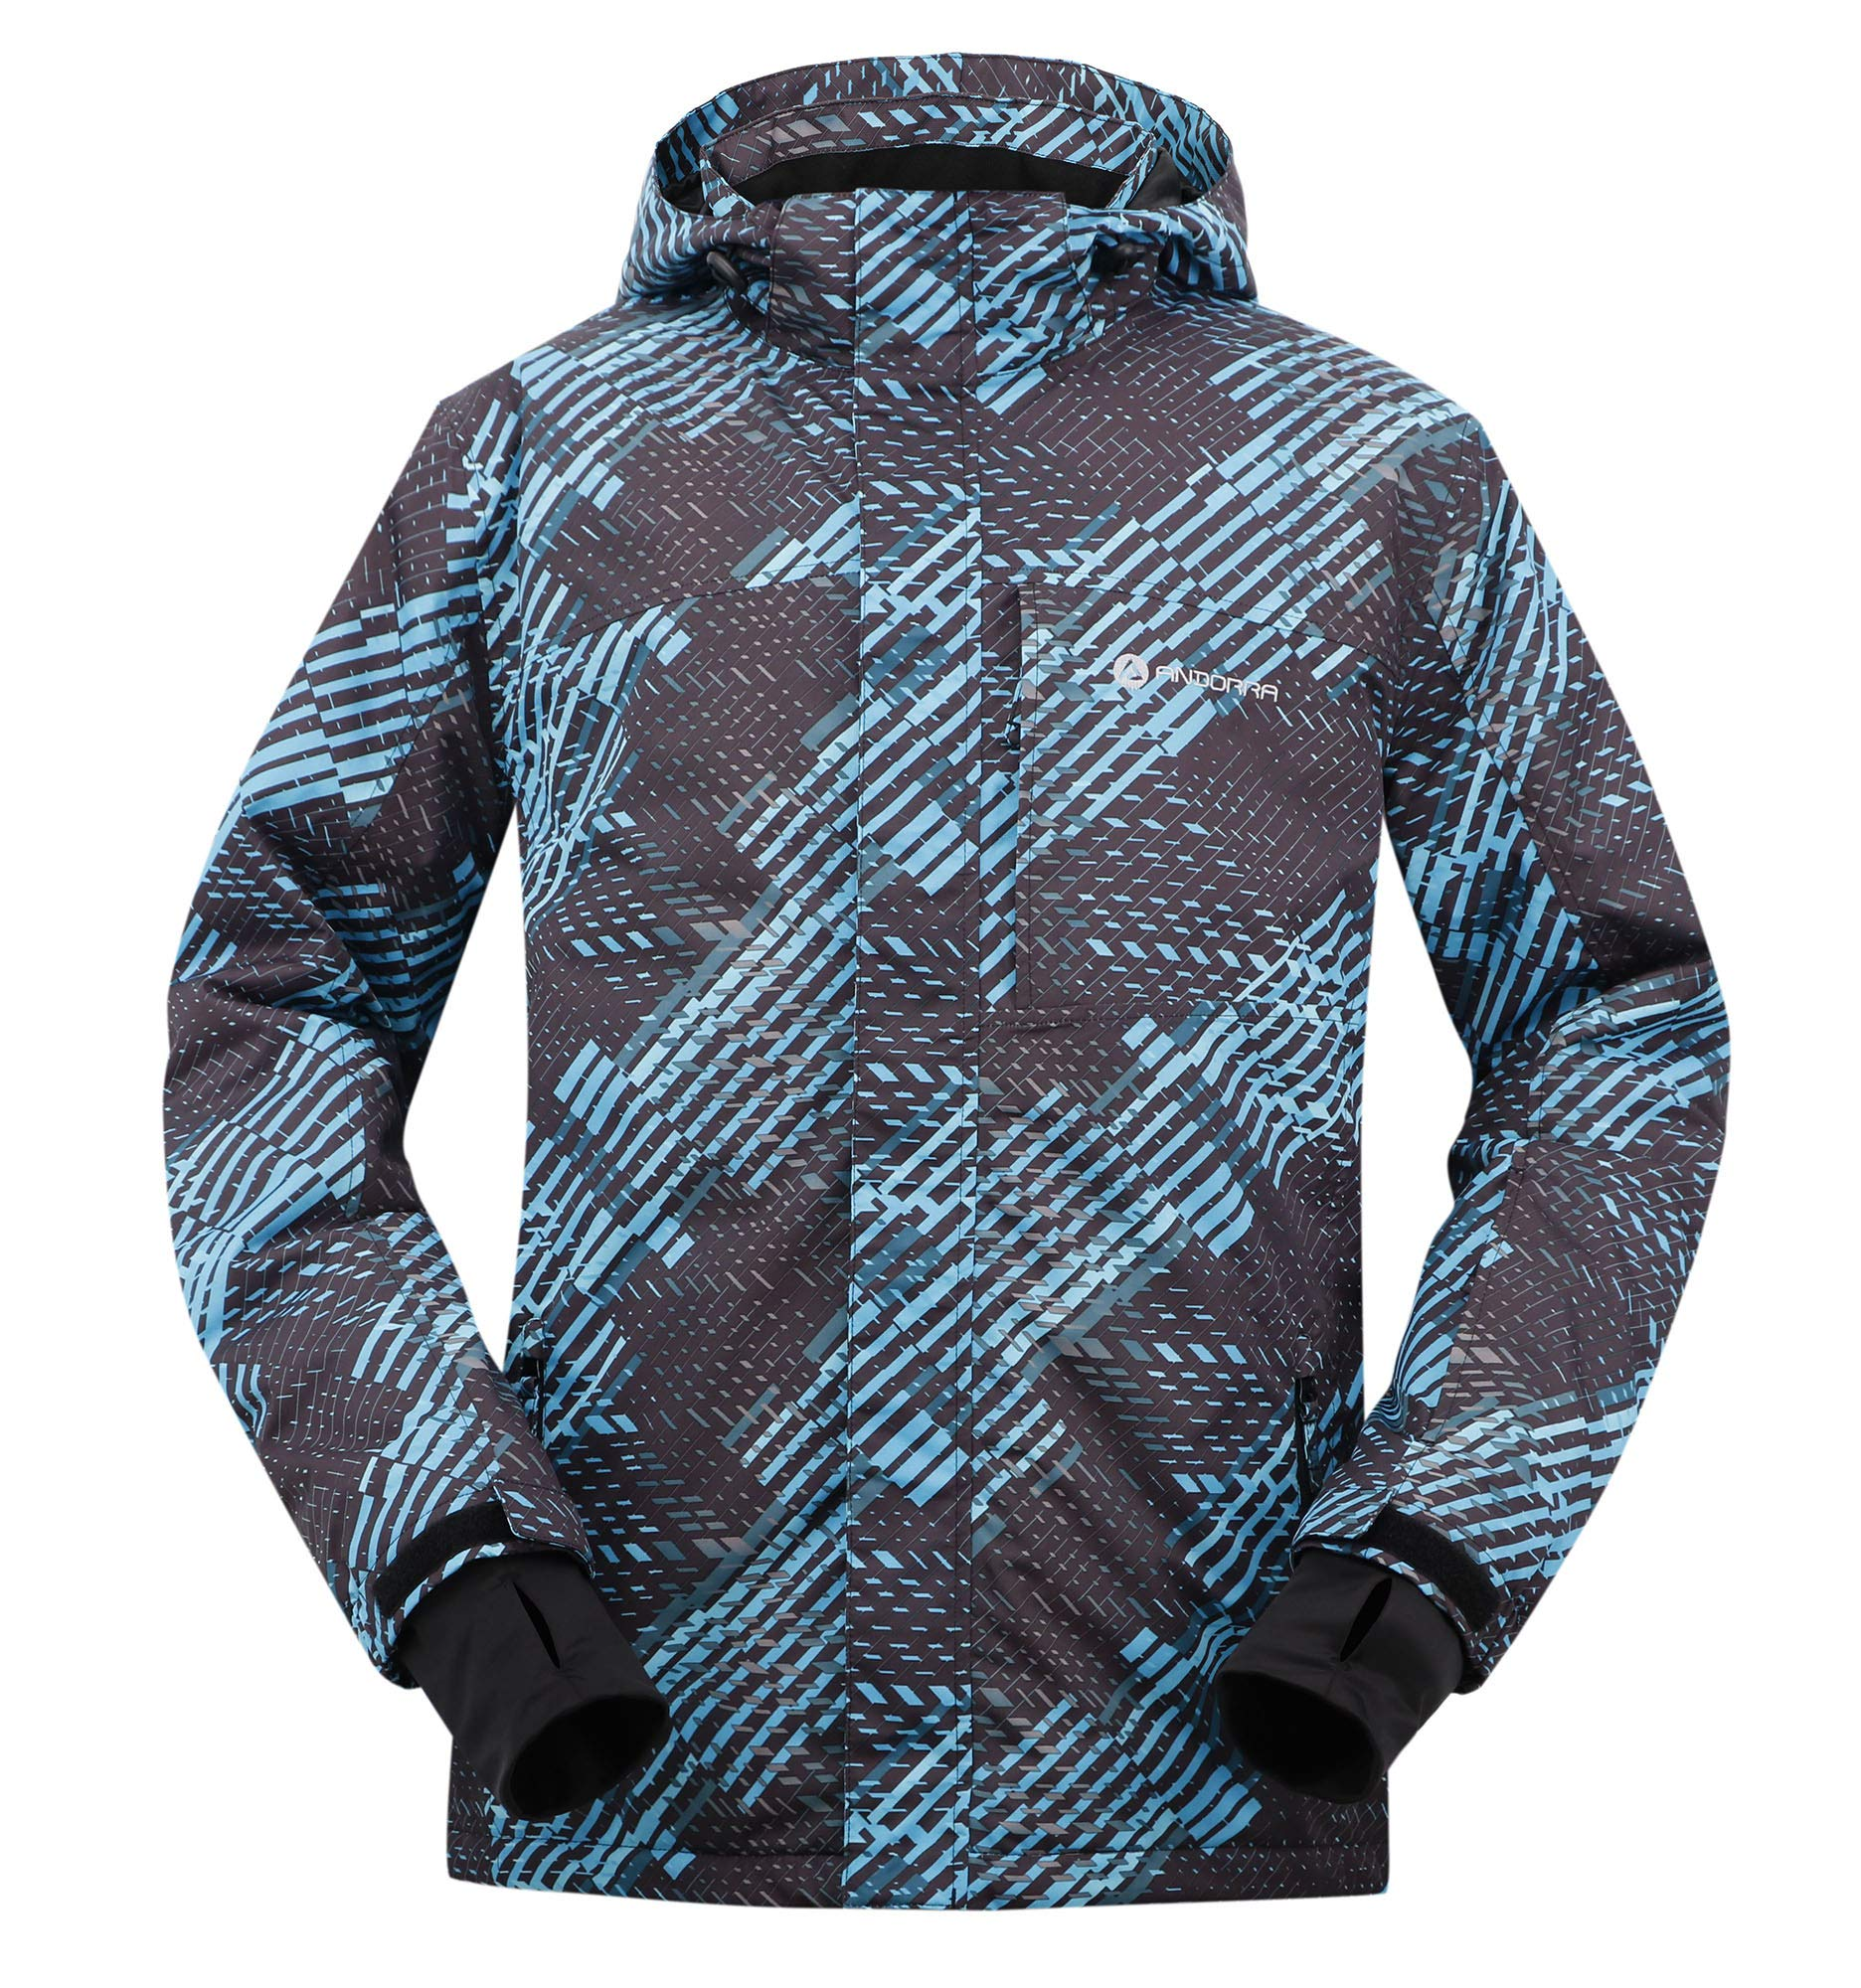 Andorra Men's Performance Insulated Ski Jacket with Zip-Off Hood,Binary Matrix,M by Andorra